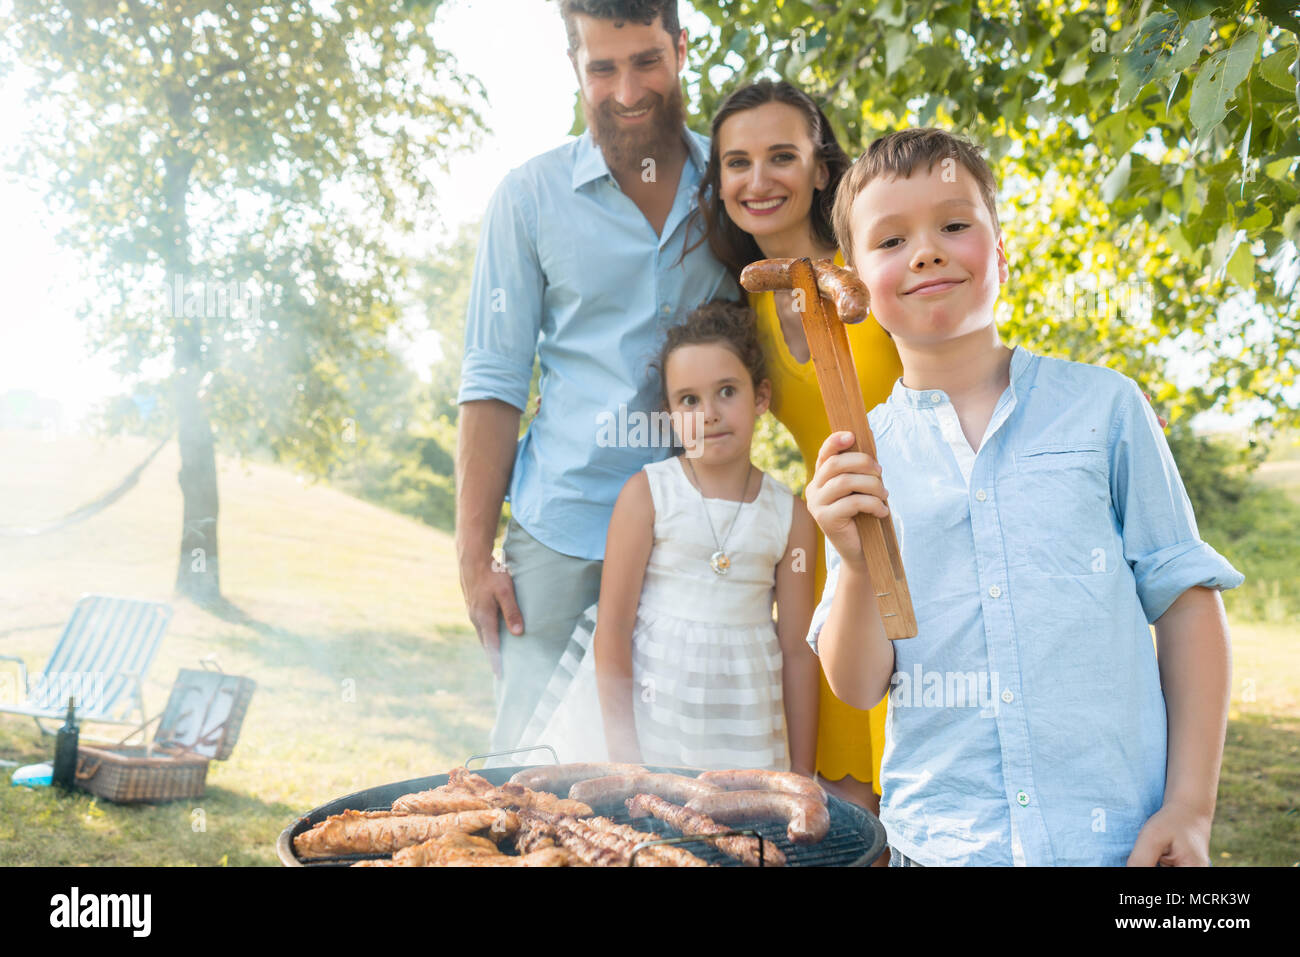 Portrait of happy family with two children standing outdoors near barbecue - Stock Image